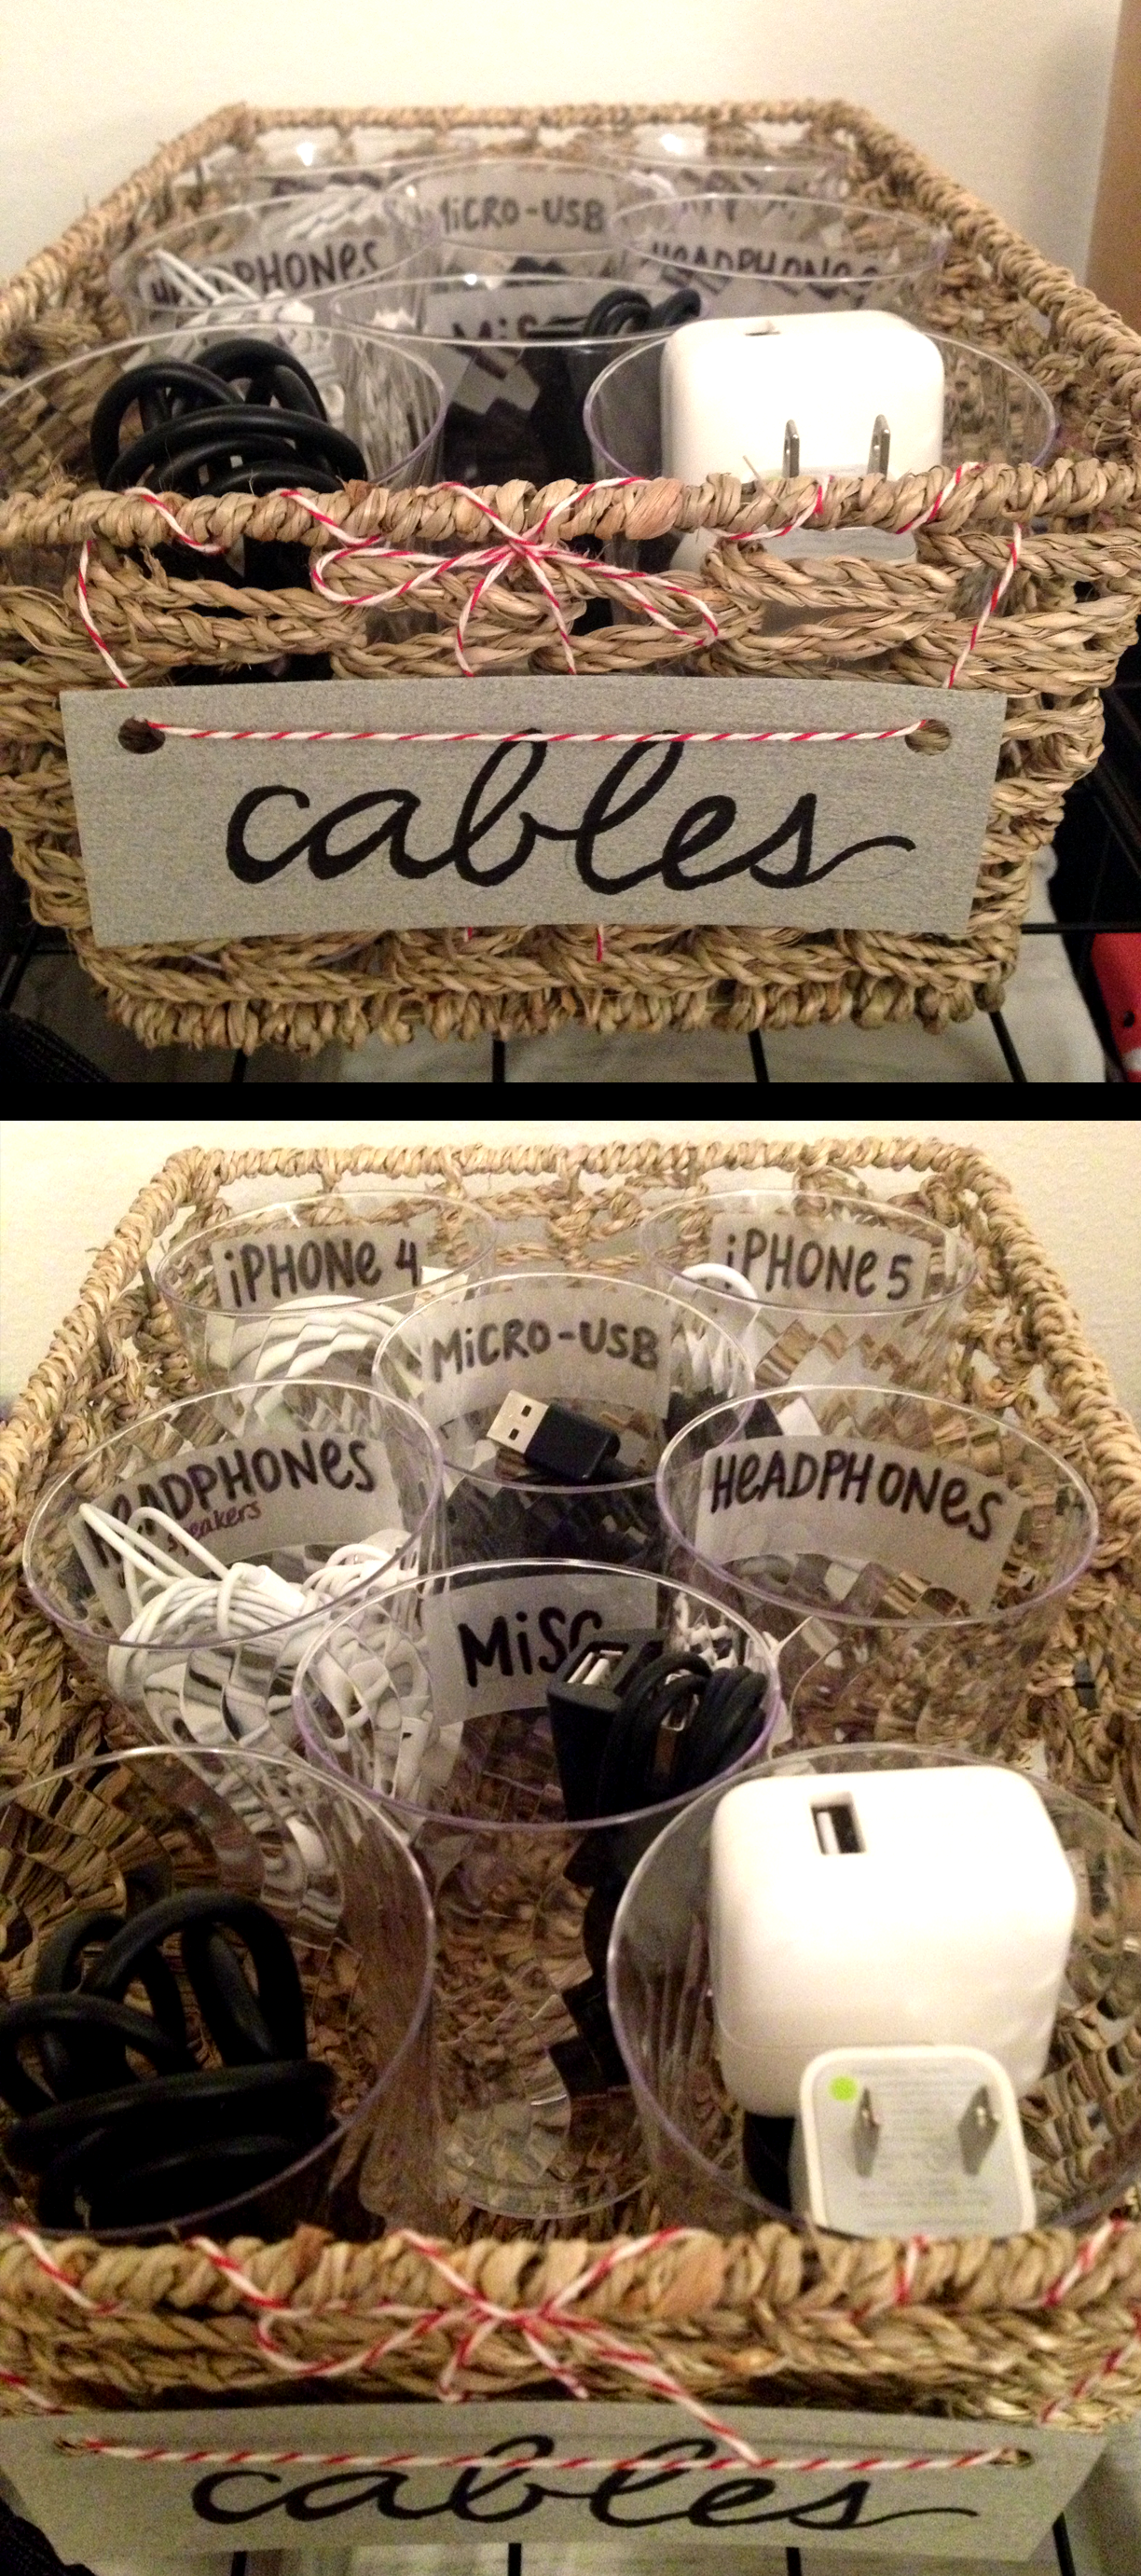 Cable organizer using plastic cups and a basket.